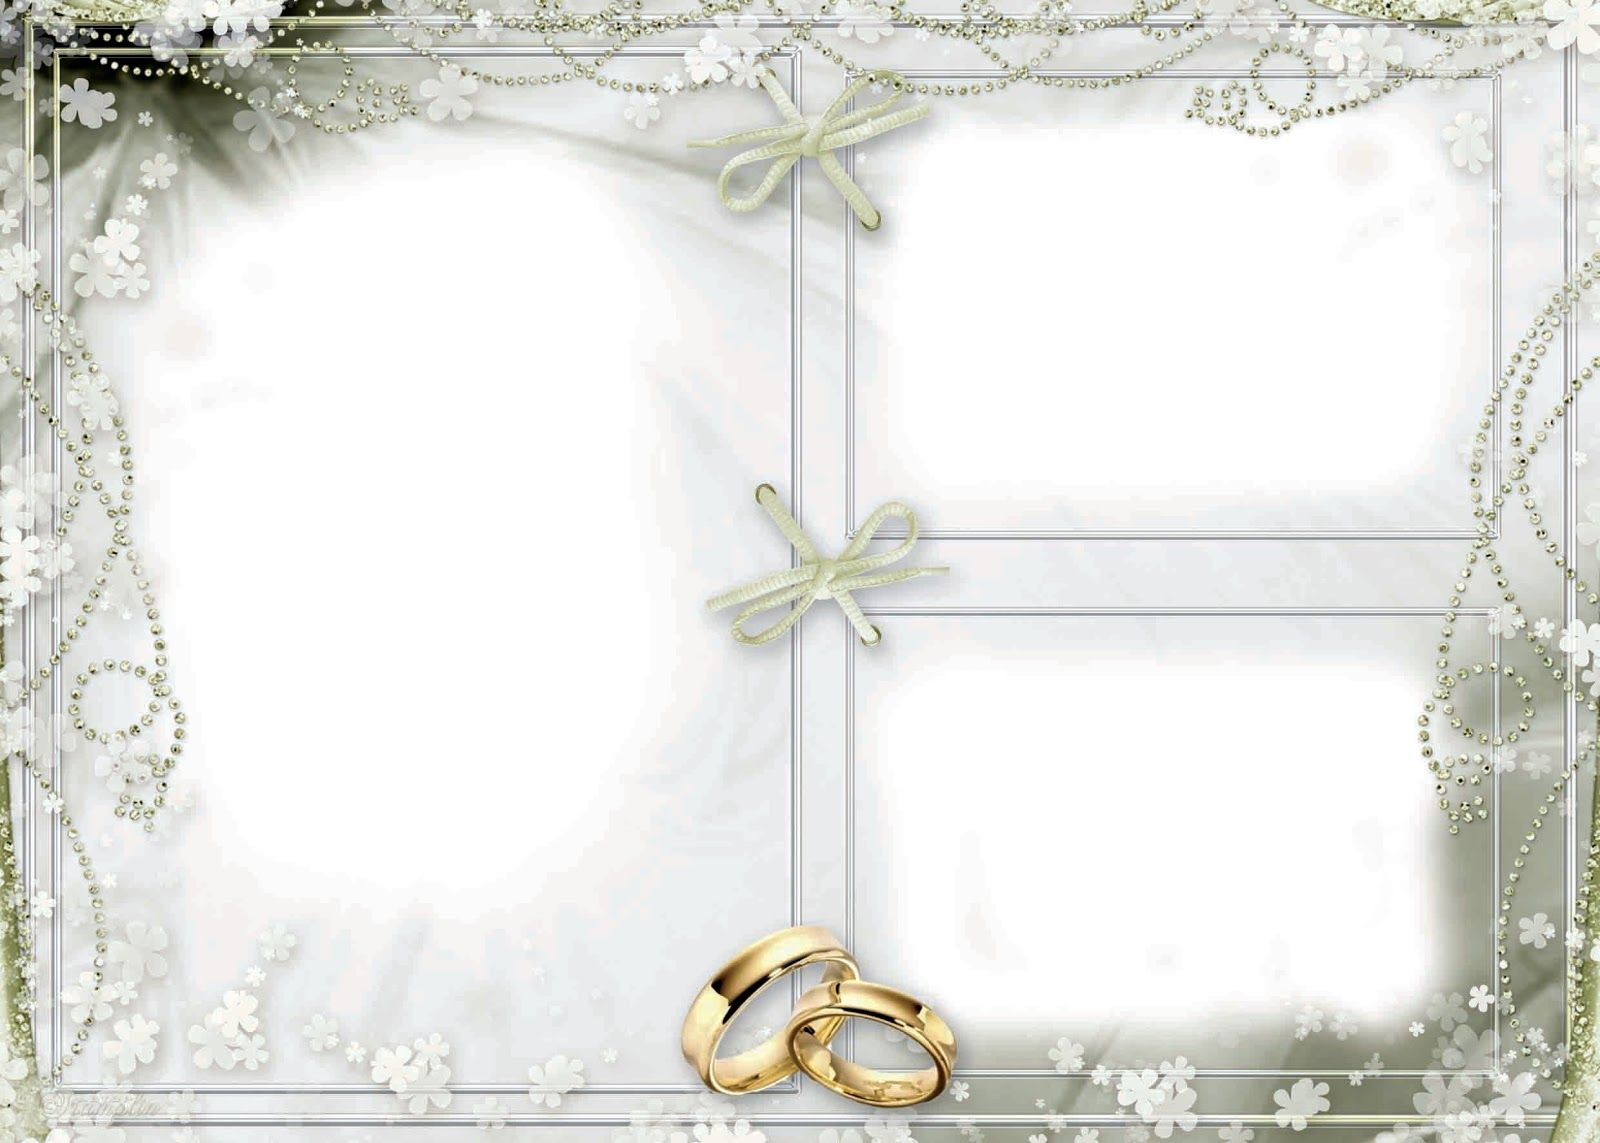 Awesome wedding frames png free download frames pinterest awesome wedding frames png free download jeuxipadfo Gallery